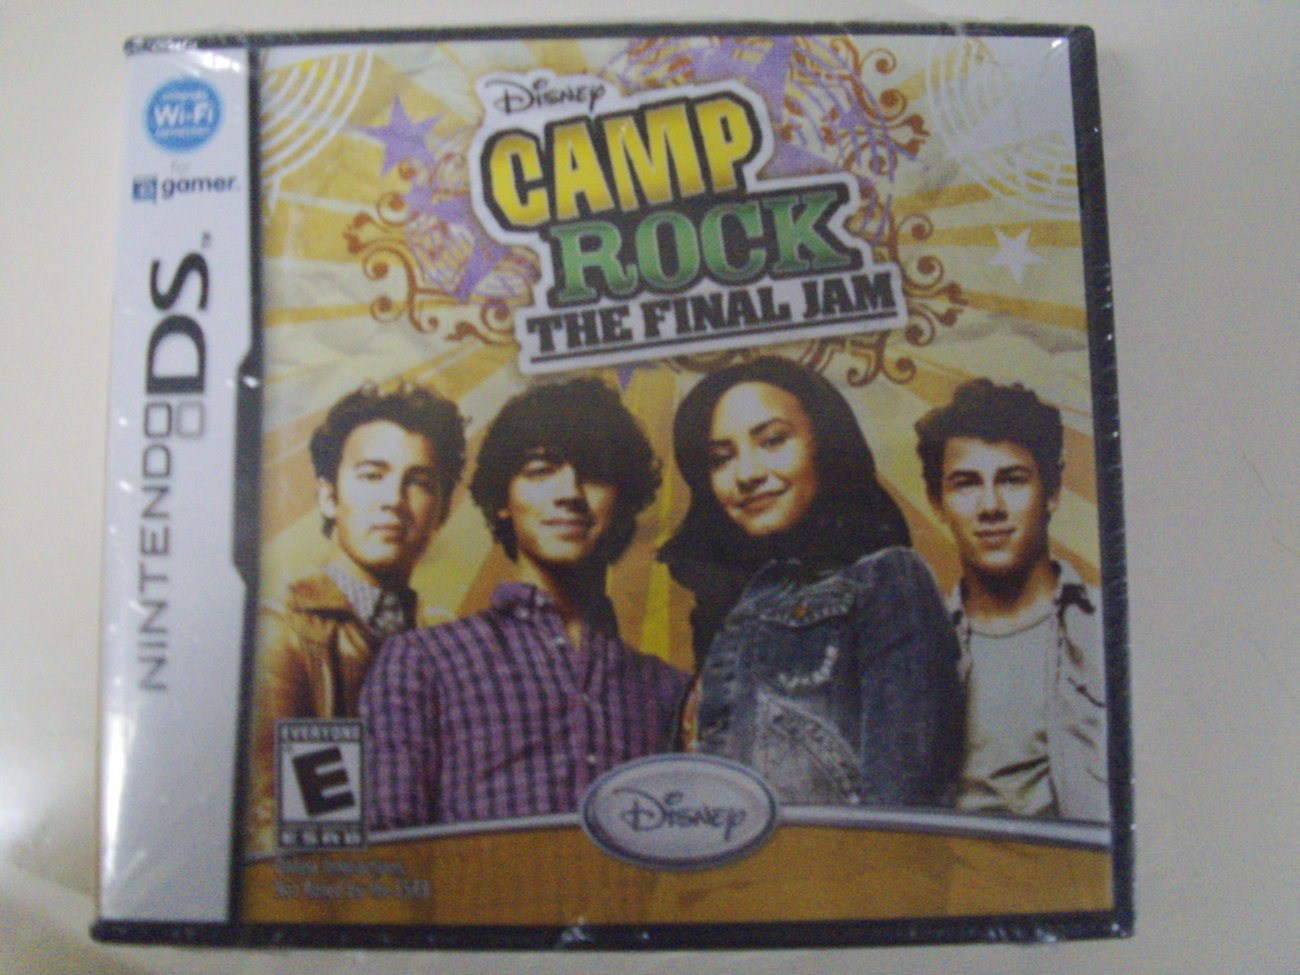 Disney Camp Rock The Final Jam Nintendo DS, DSi XL 3DS Jonas Brothers - New